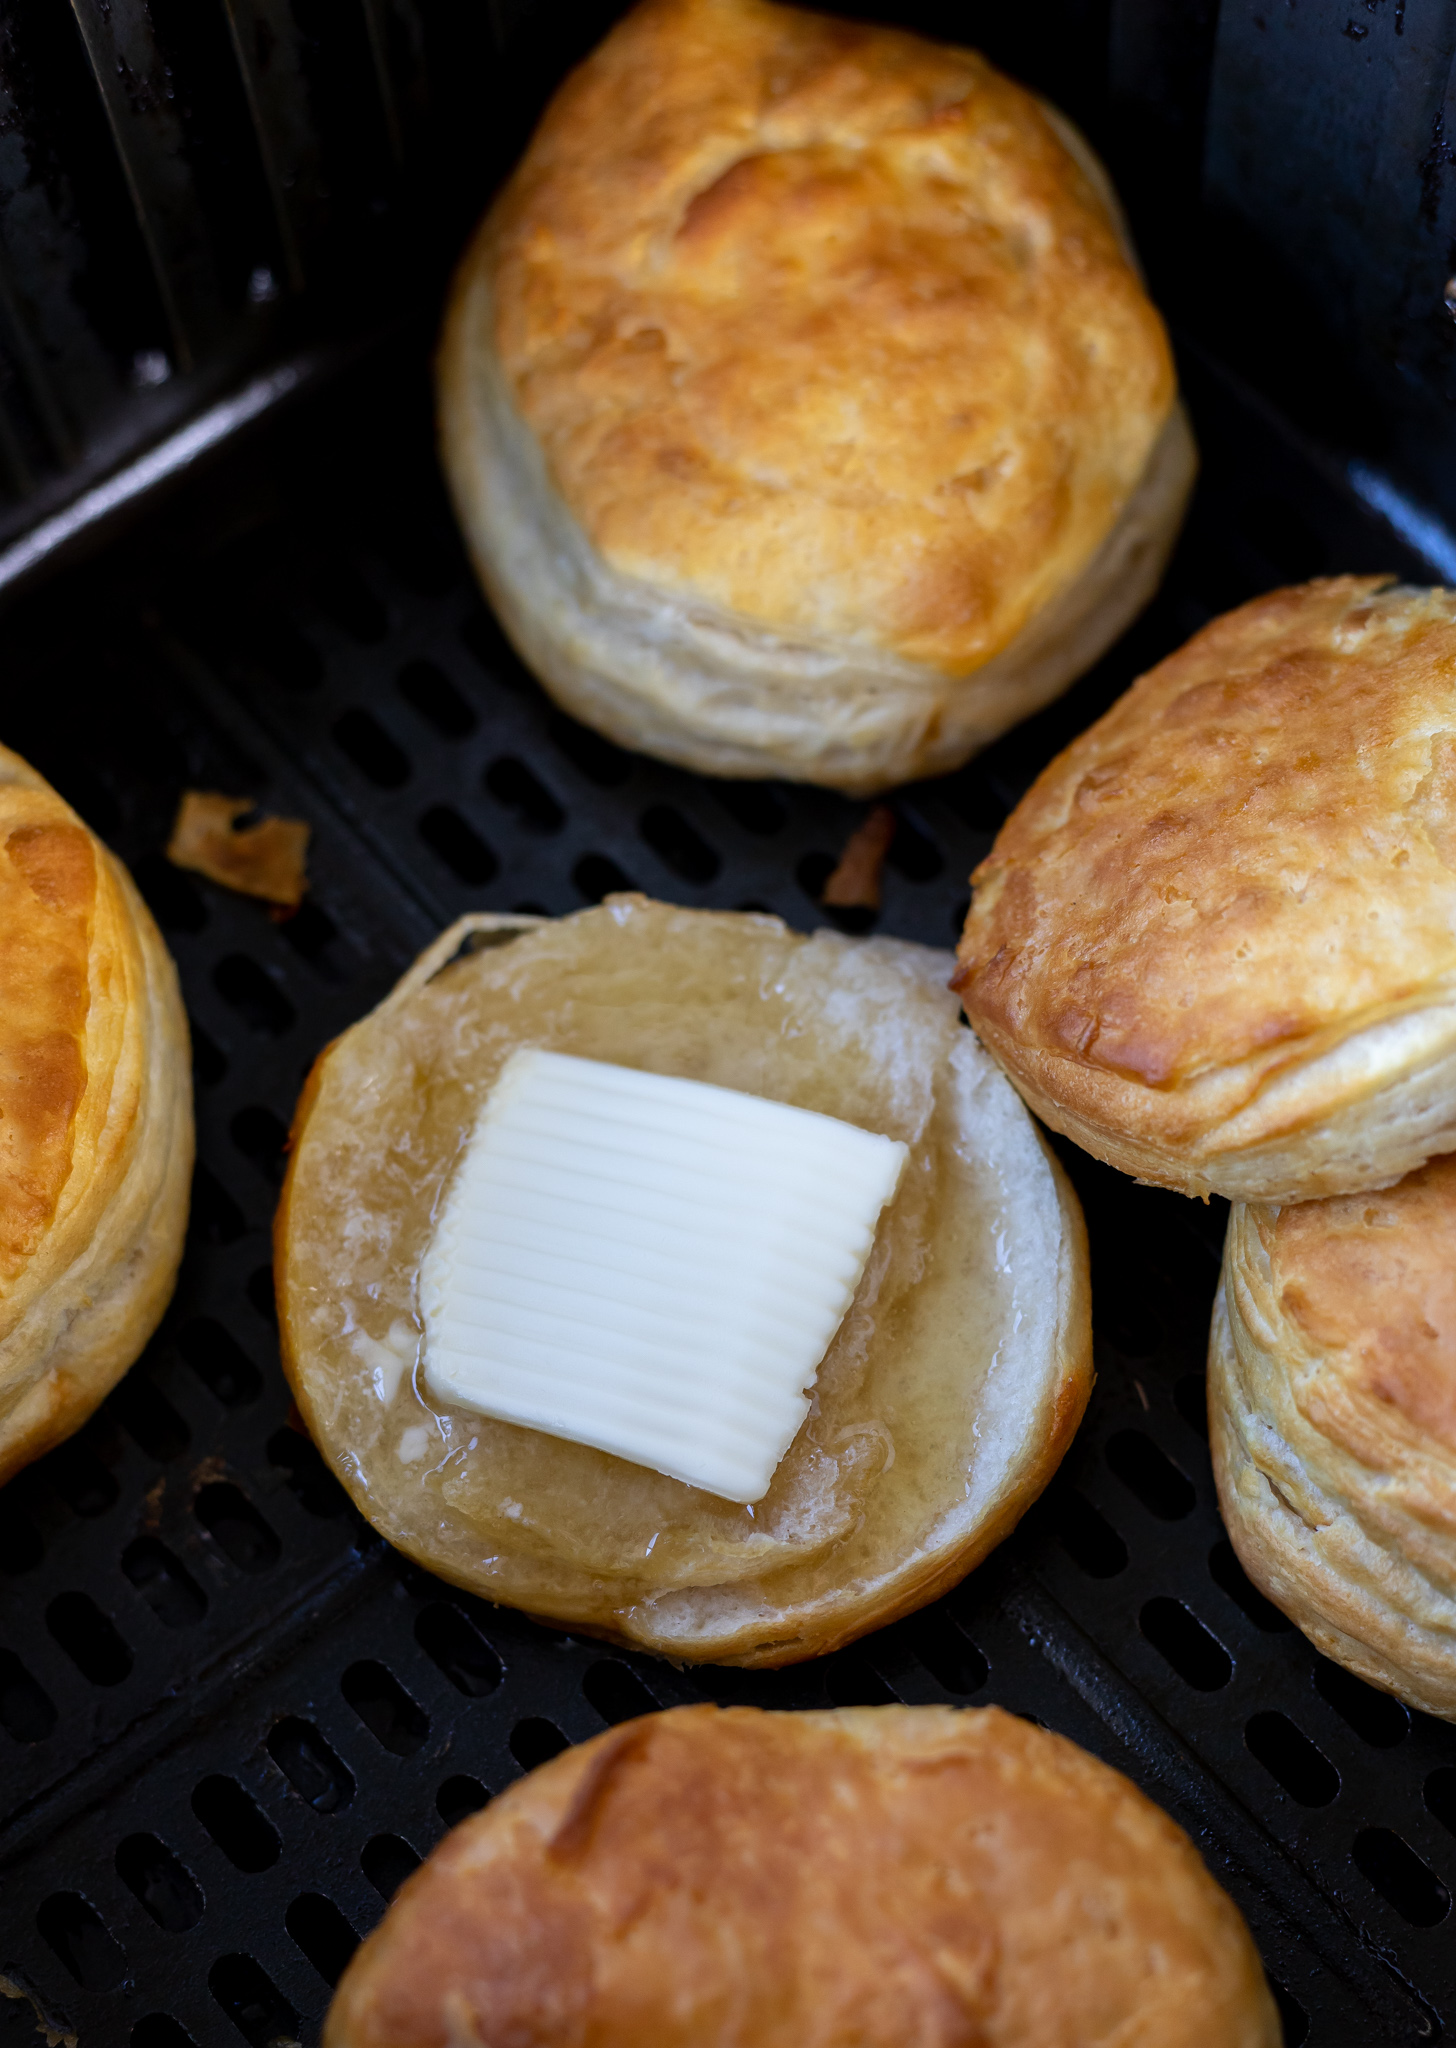 biscuit cut in half topped with butter and honey